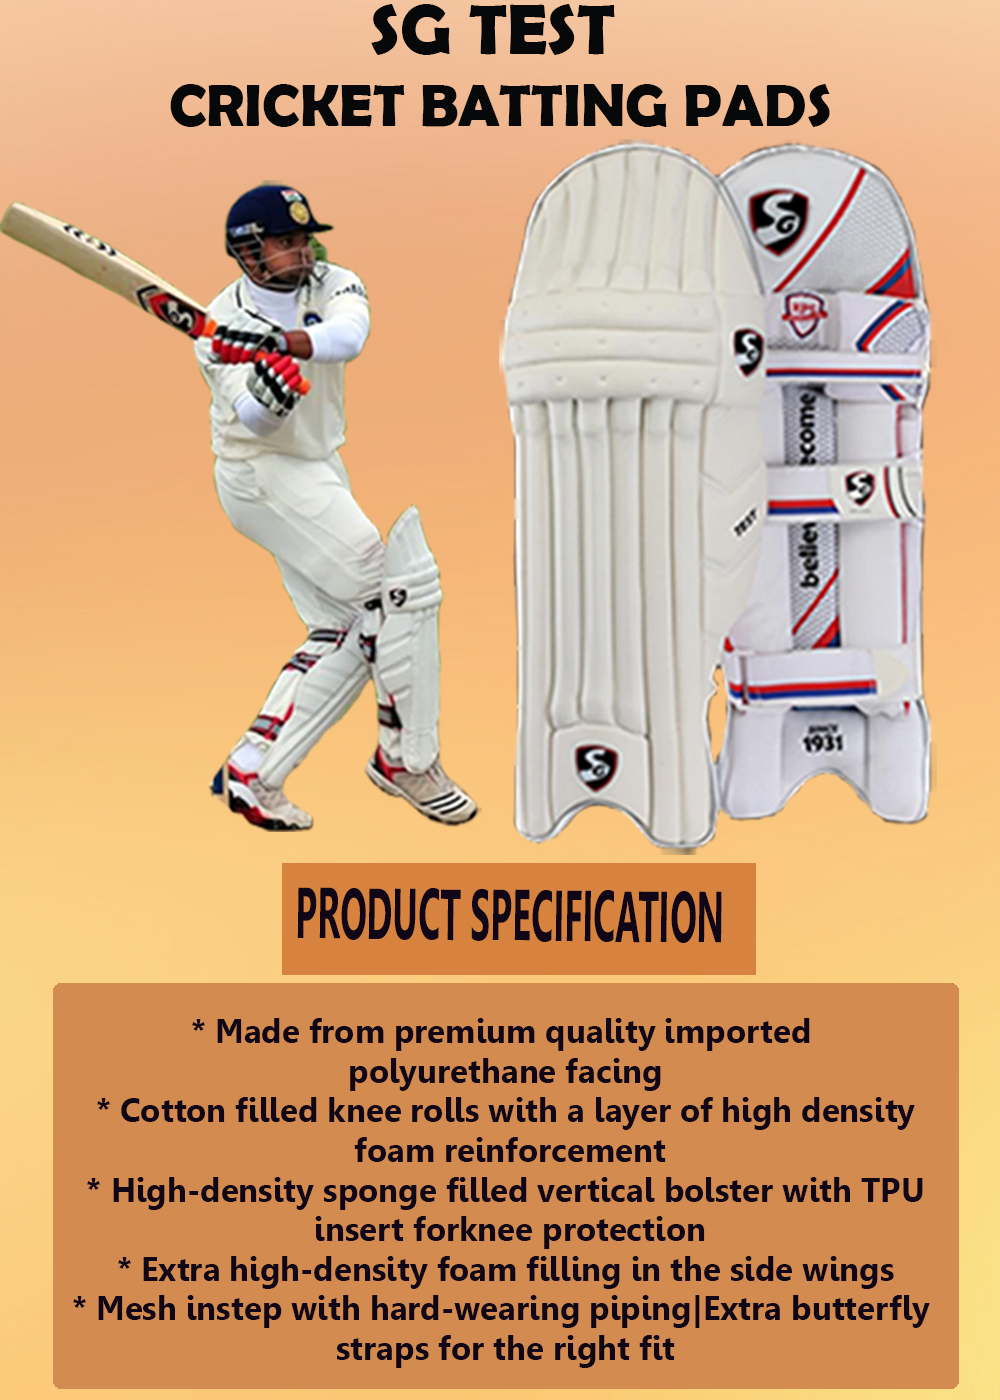 SG Test Cricket Batting Pads_4